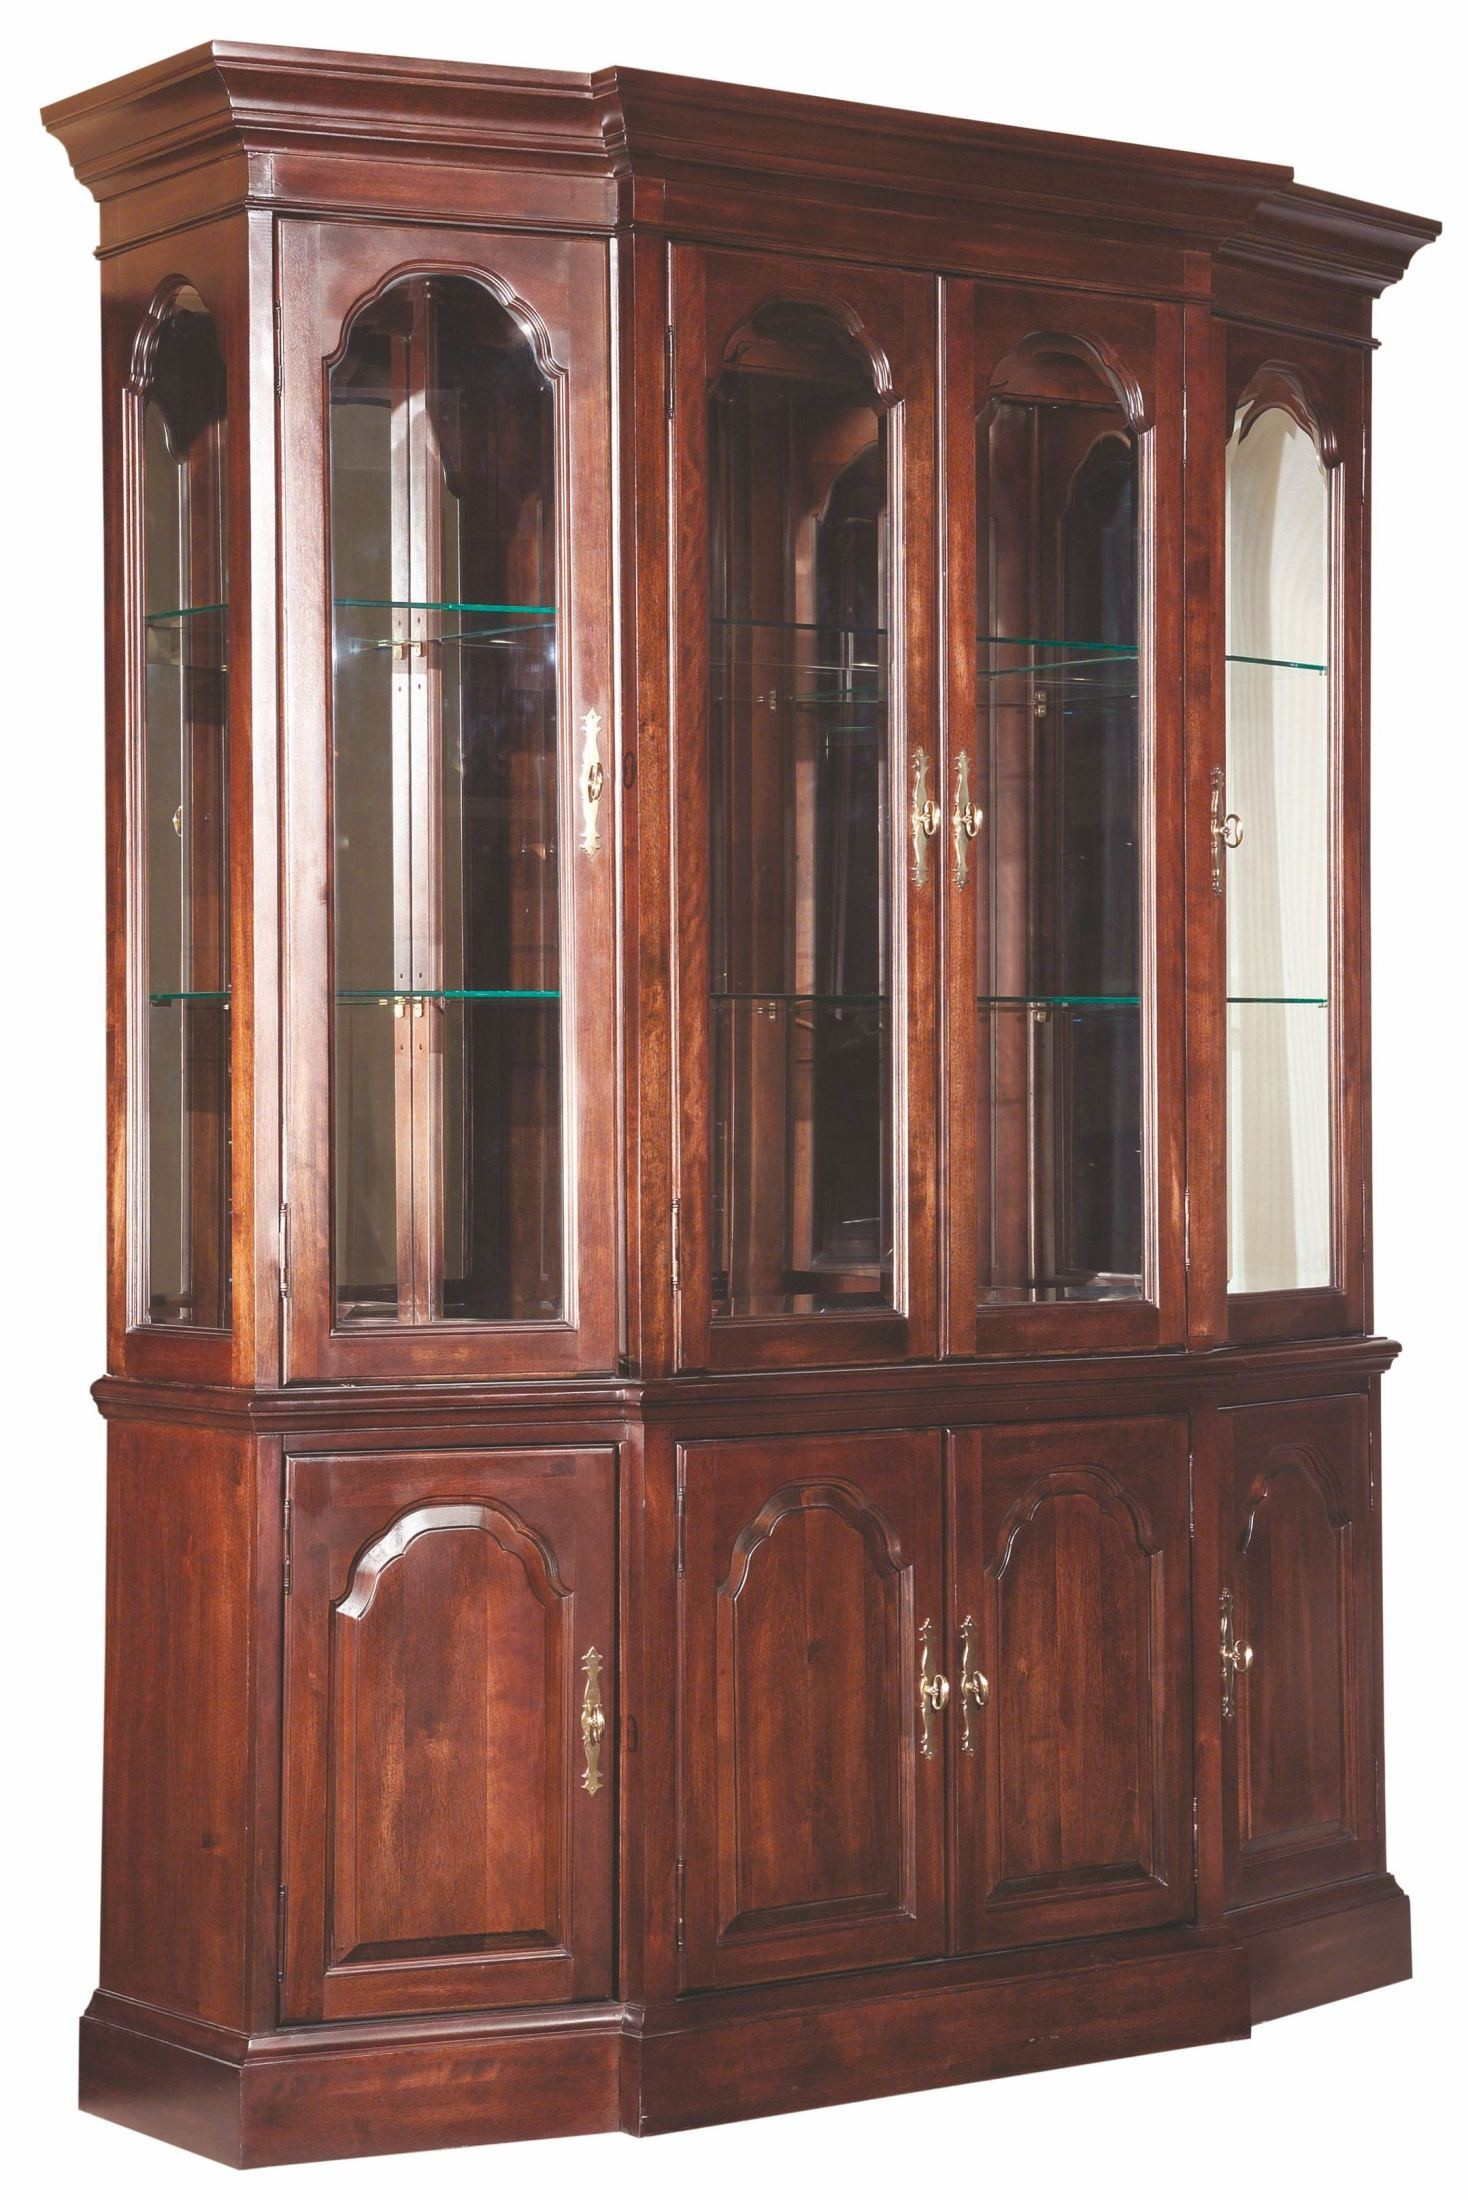 Carriage house canted china cabinet 60 086p kincaid for Carriage house kitchen cabinets